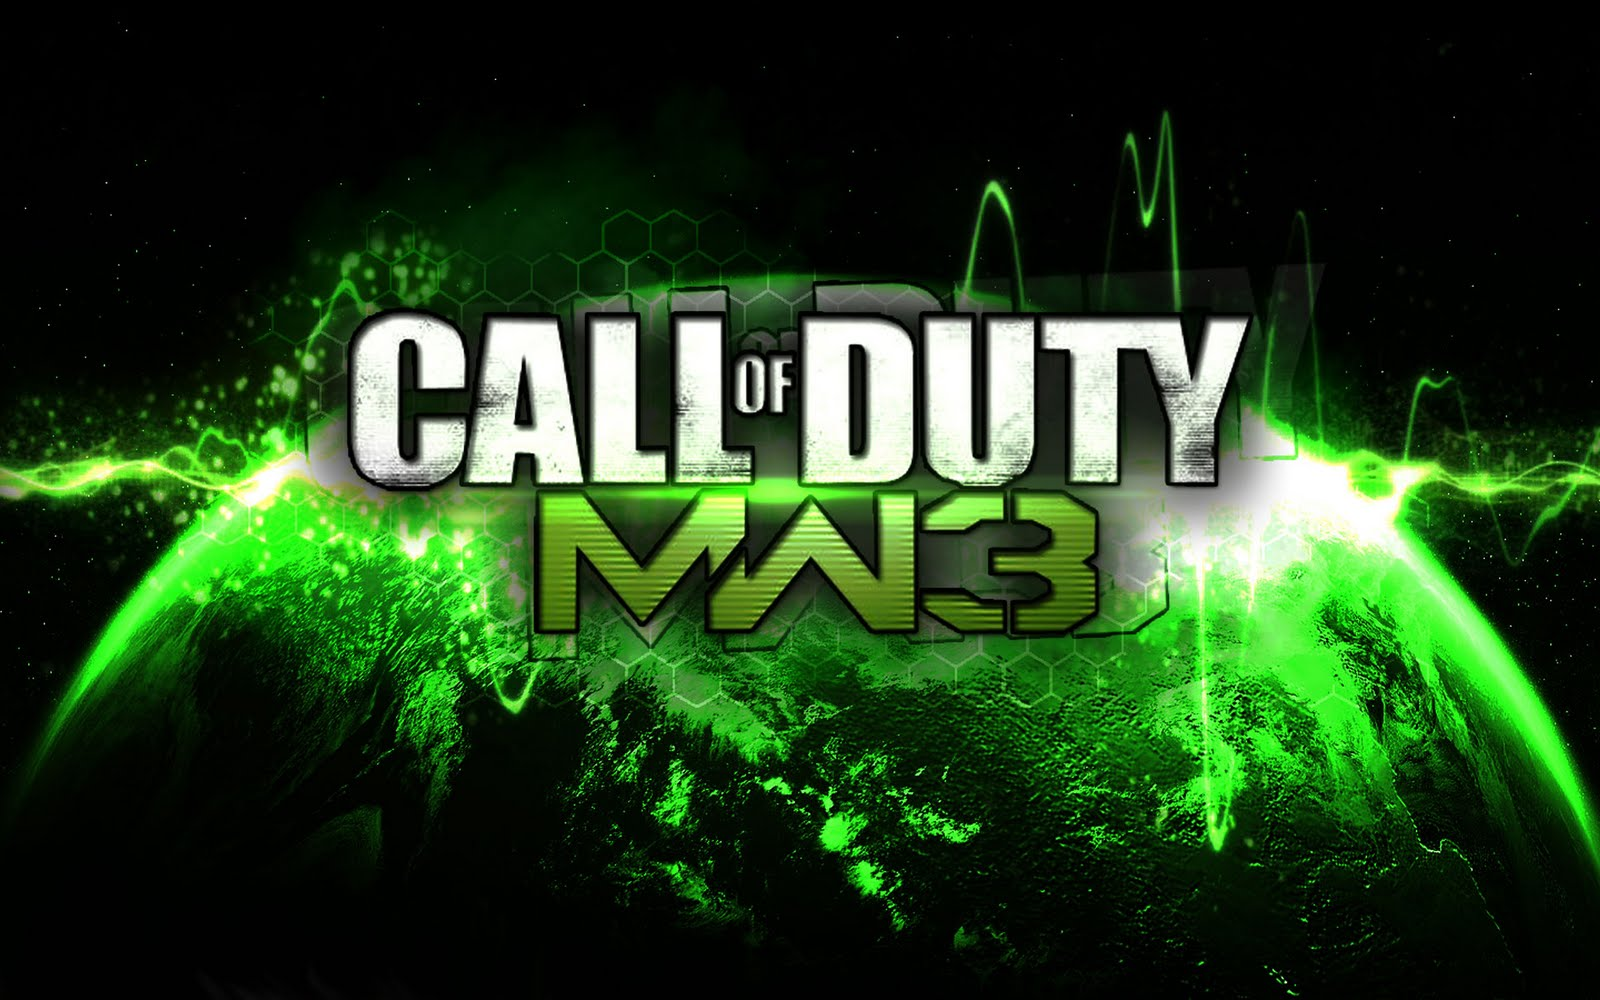 Download Call of Duty: Modern Warfare 3 For PC - My ...